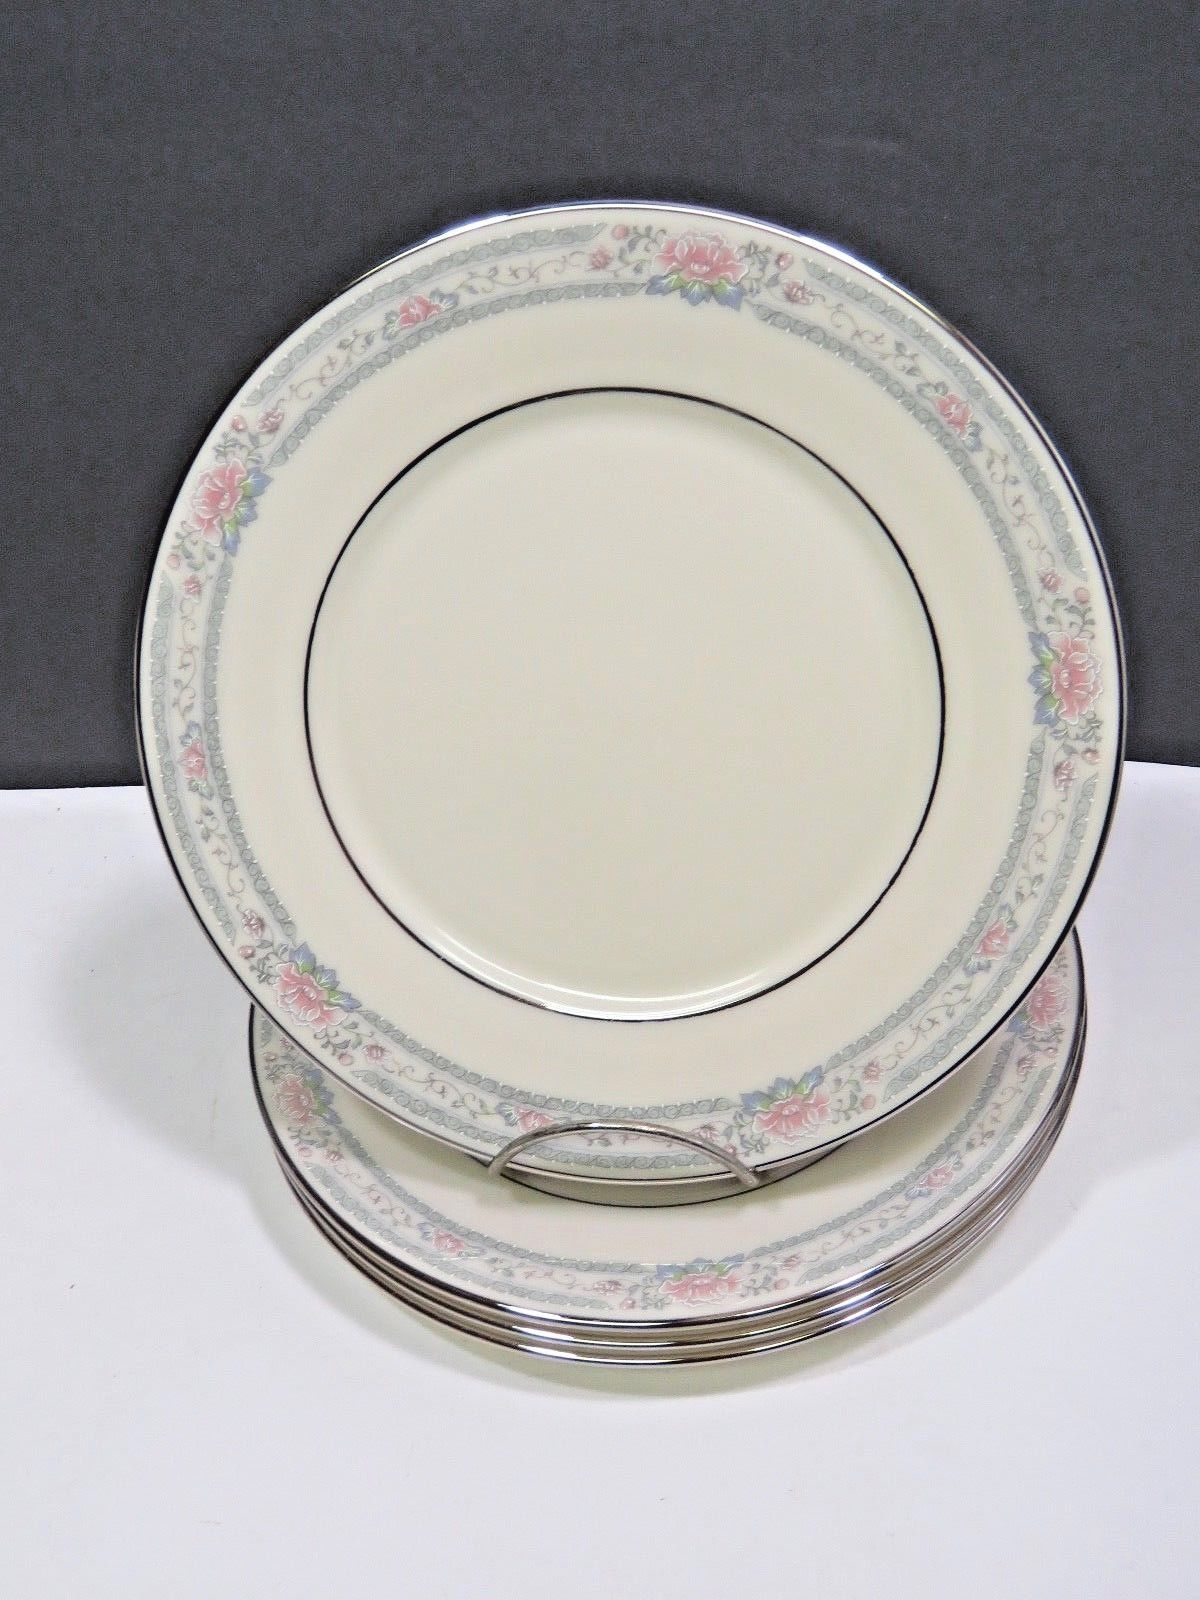 Primary image for Set of 4 Lenox Charleston Salad Lunch Plates 8""